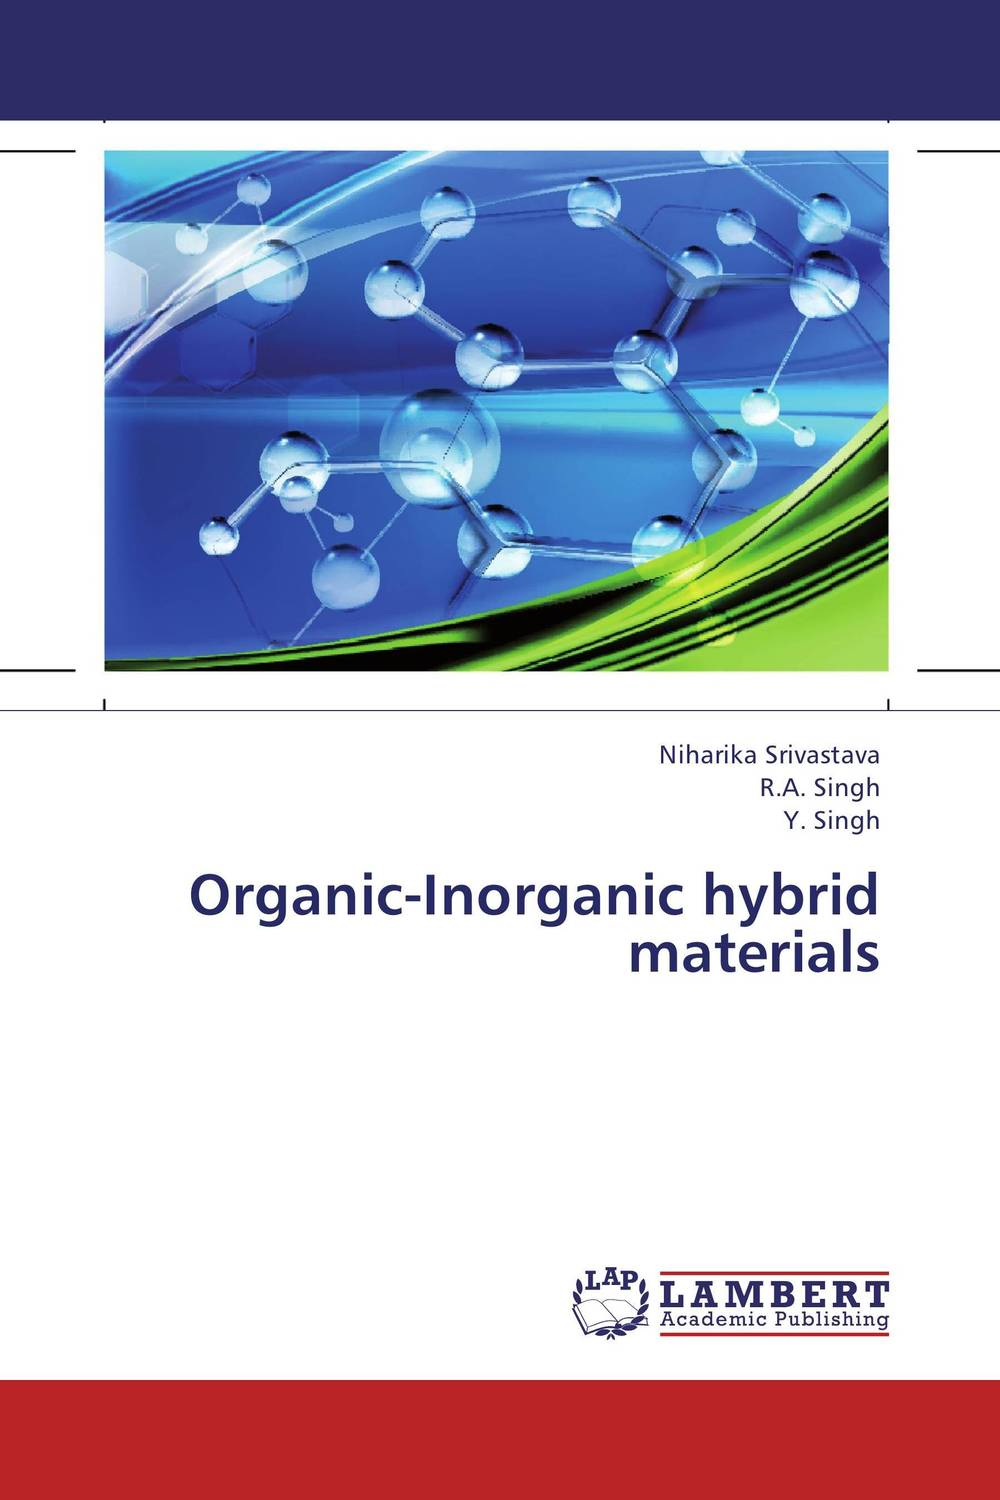 Organic-Inorganic hybrid materials dennis hall g boronic acids preparation and applications in organic synthesis medicine and materials